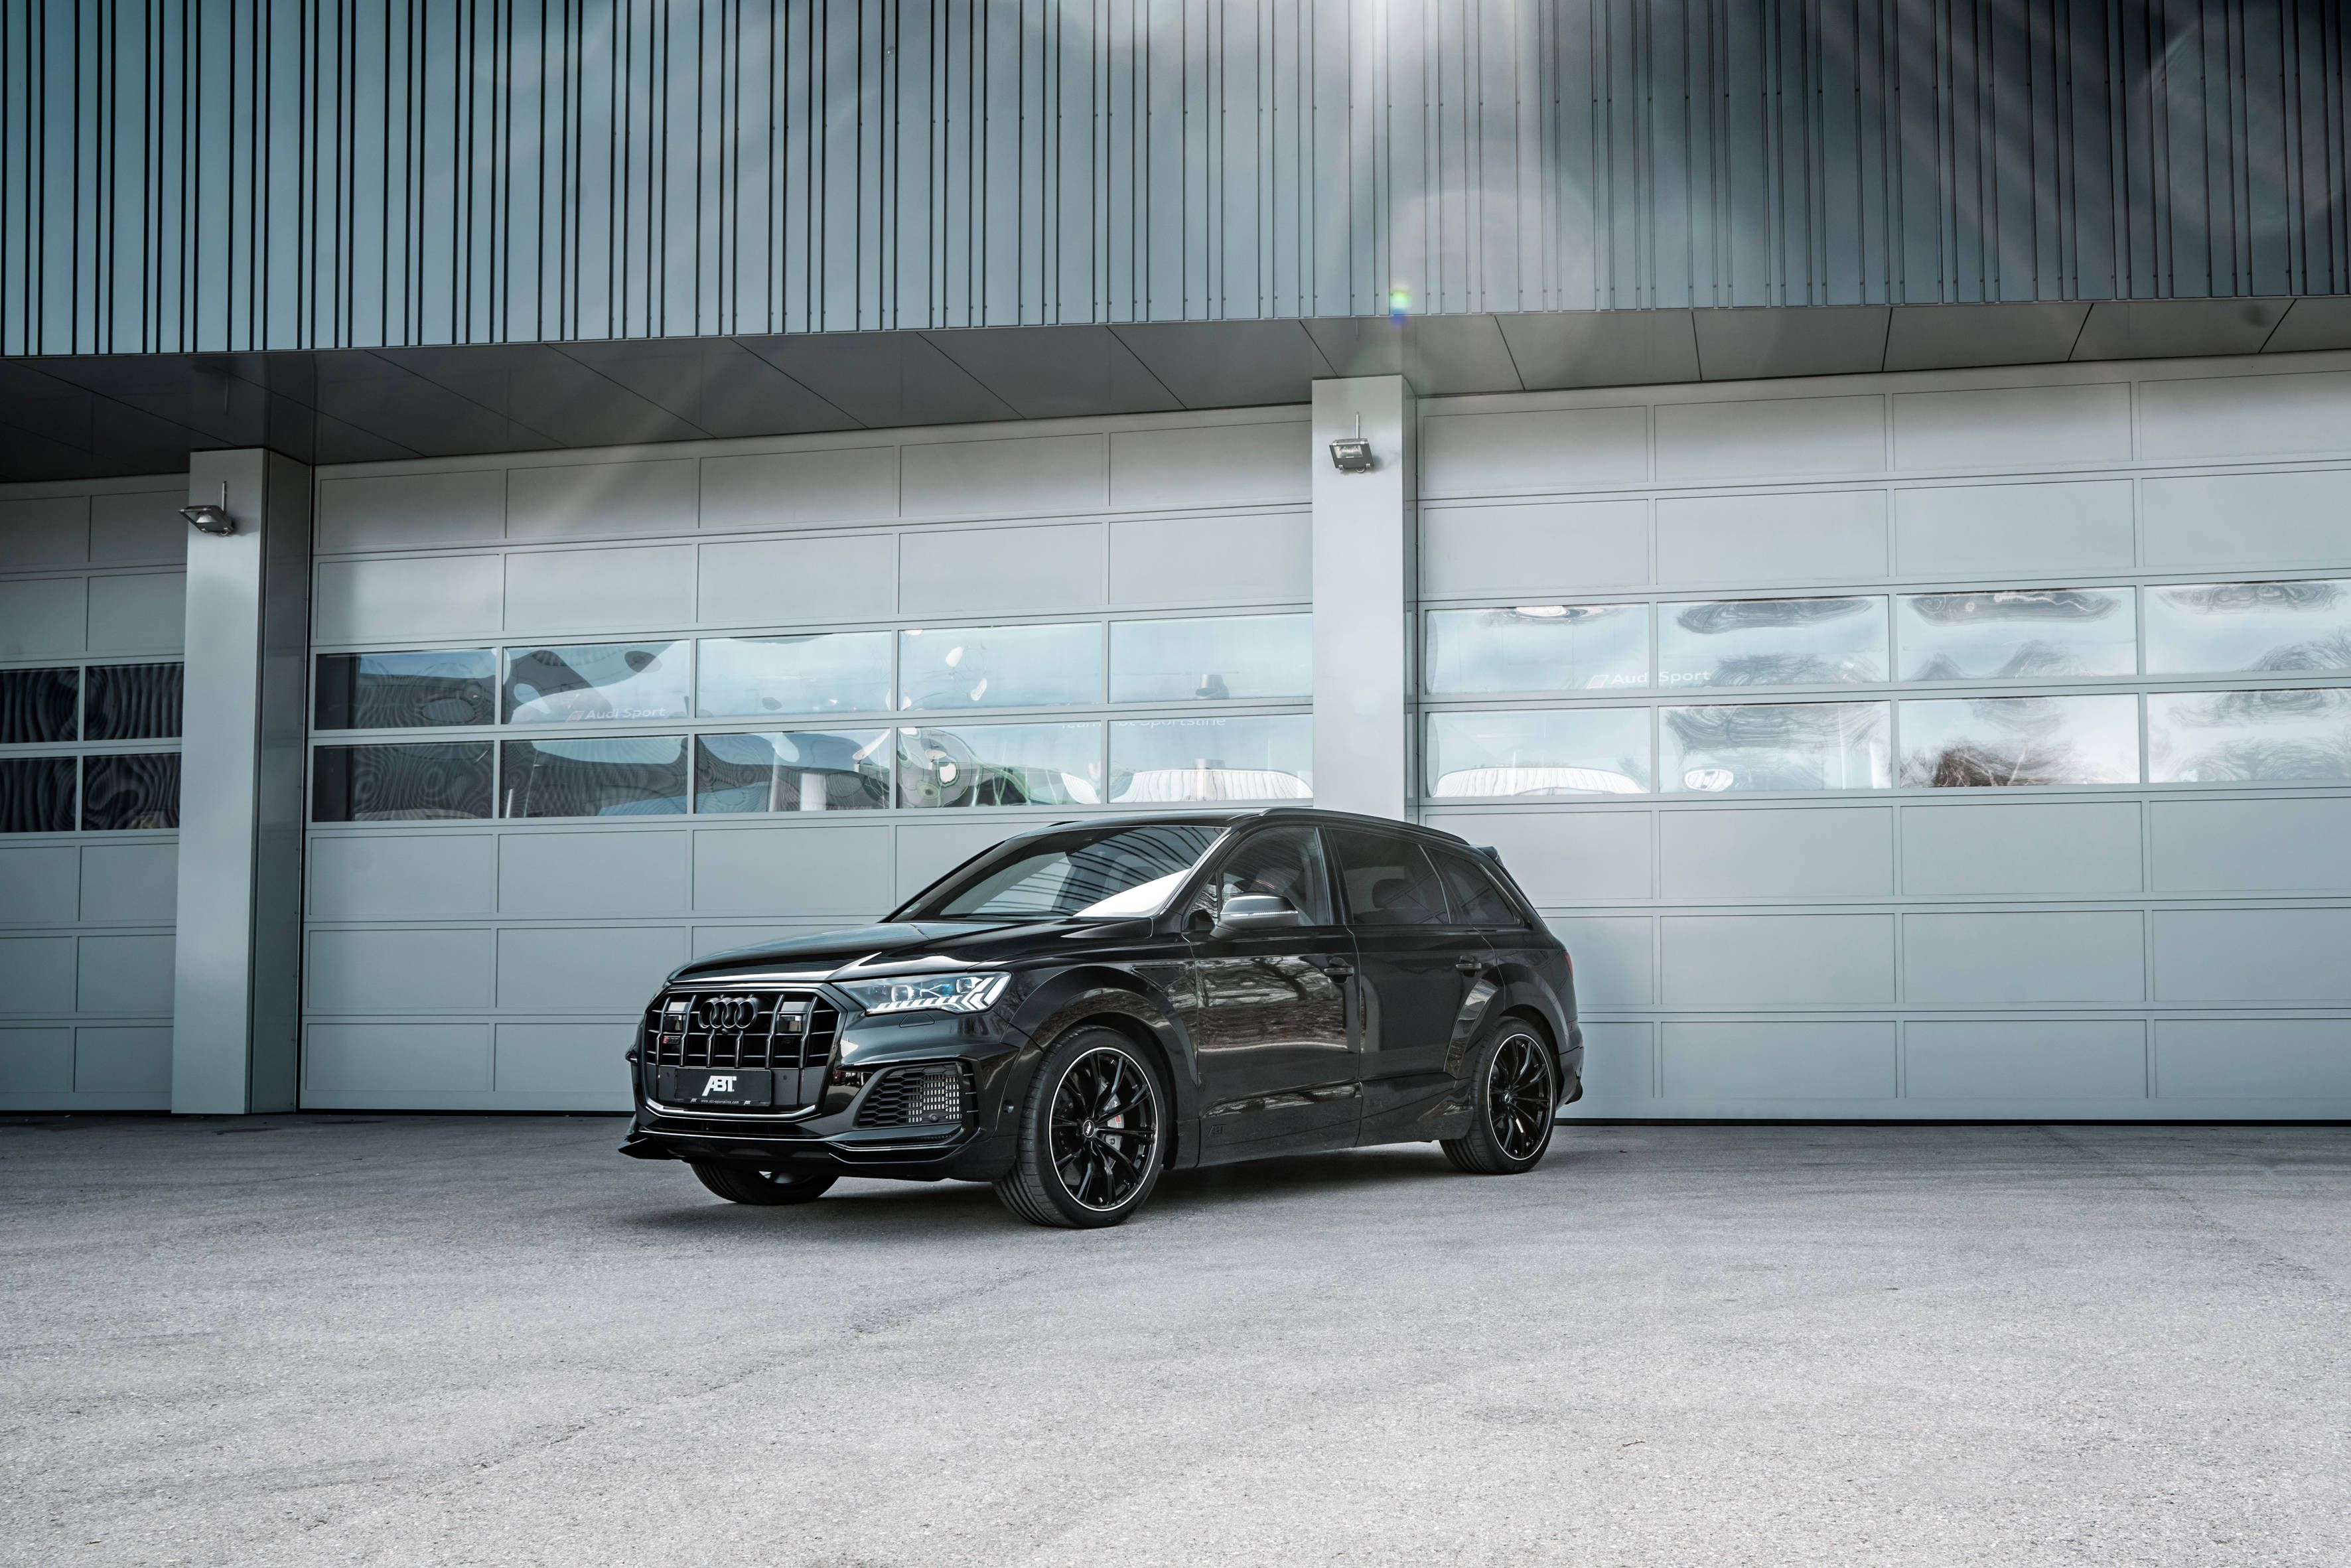 Check Out This Widebody Tuning Kit For The Audi Sq7 From Abt In 2020 Audi Abt Tdi